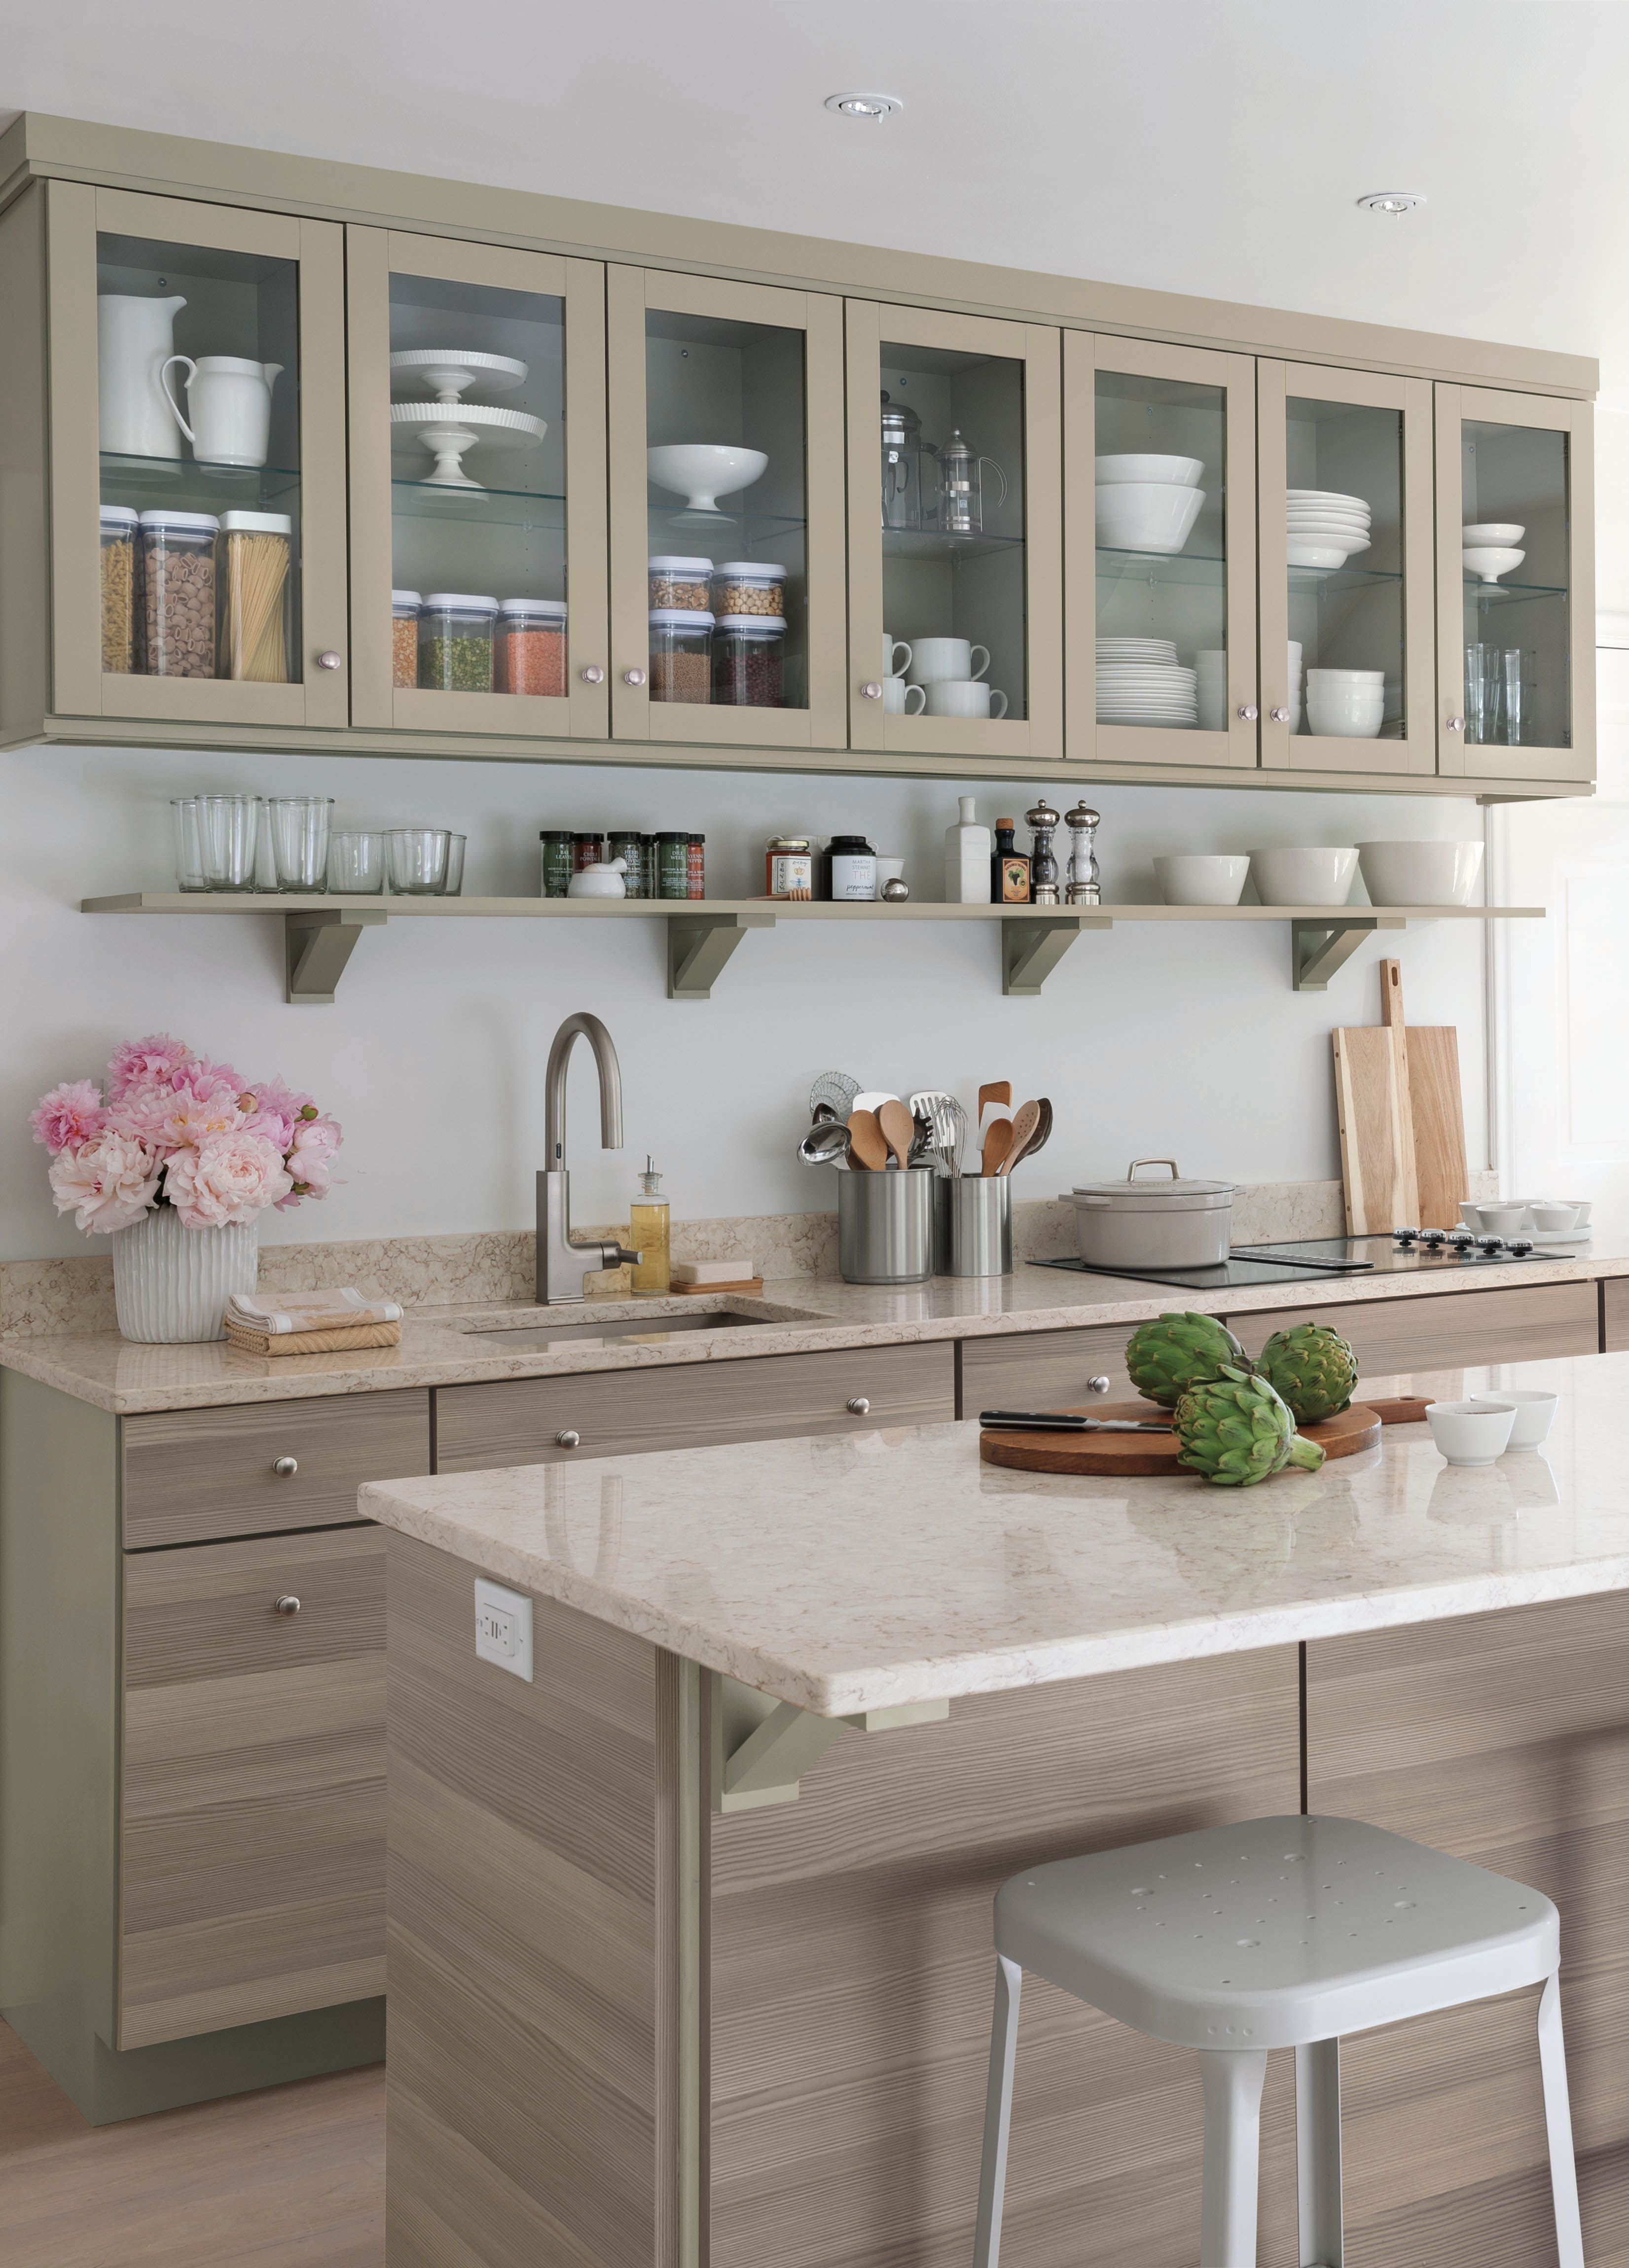 Small Kitchen Design Tip: Hide the refrigerator in the island to expand countertop and cabinet space. Click to learn more design tips and explore Martha Stewart's kitchen renovation.